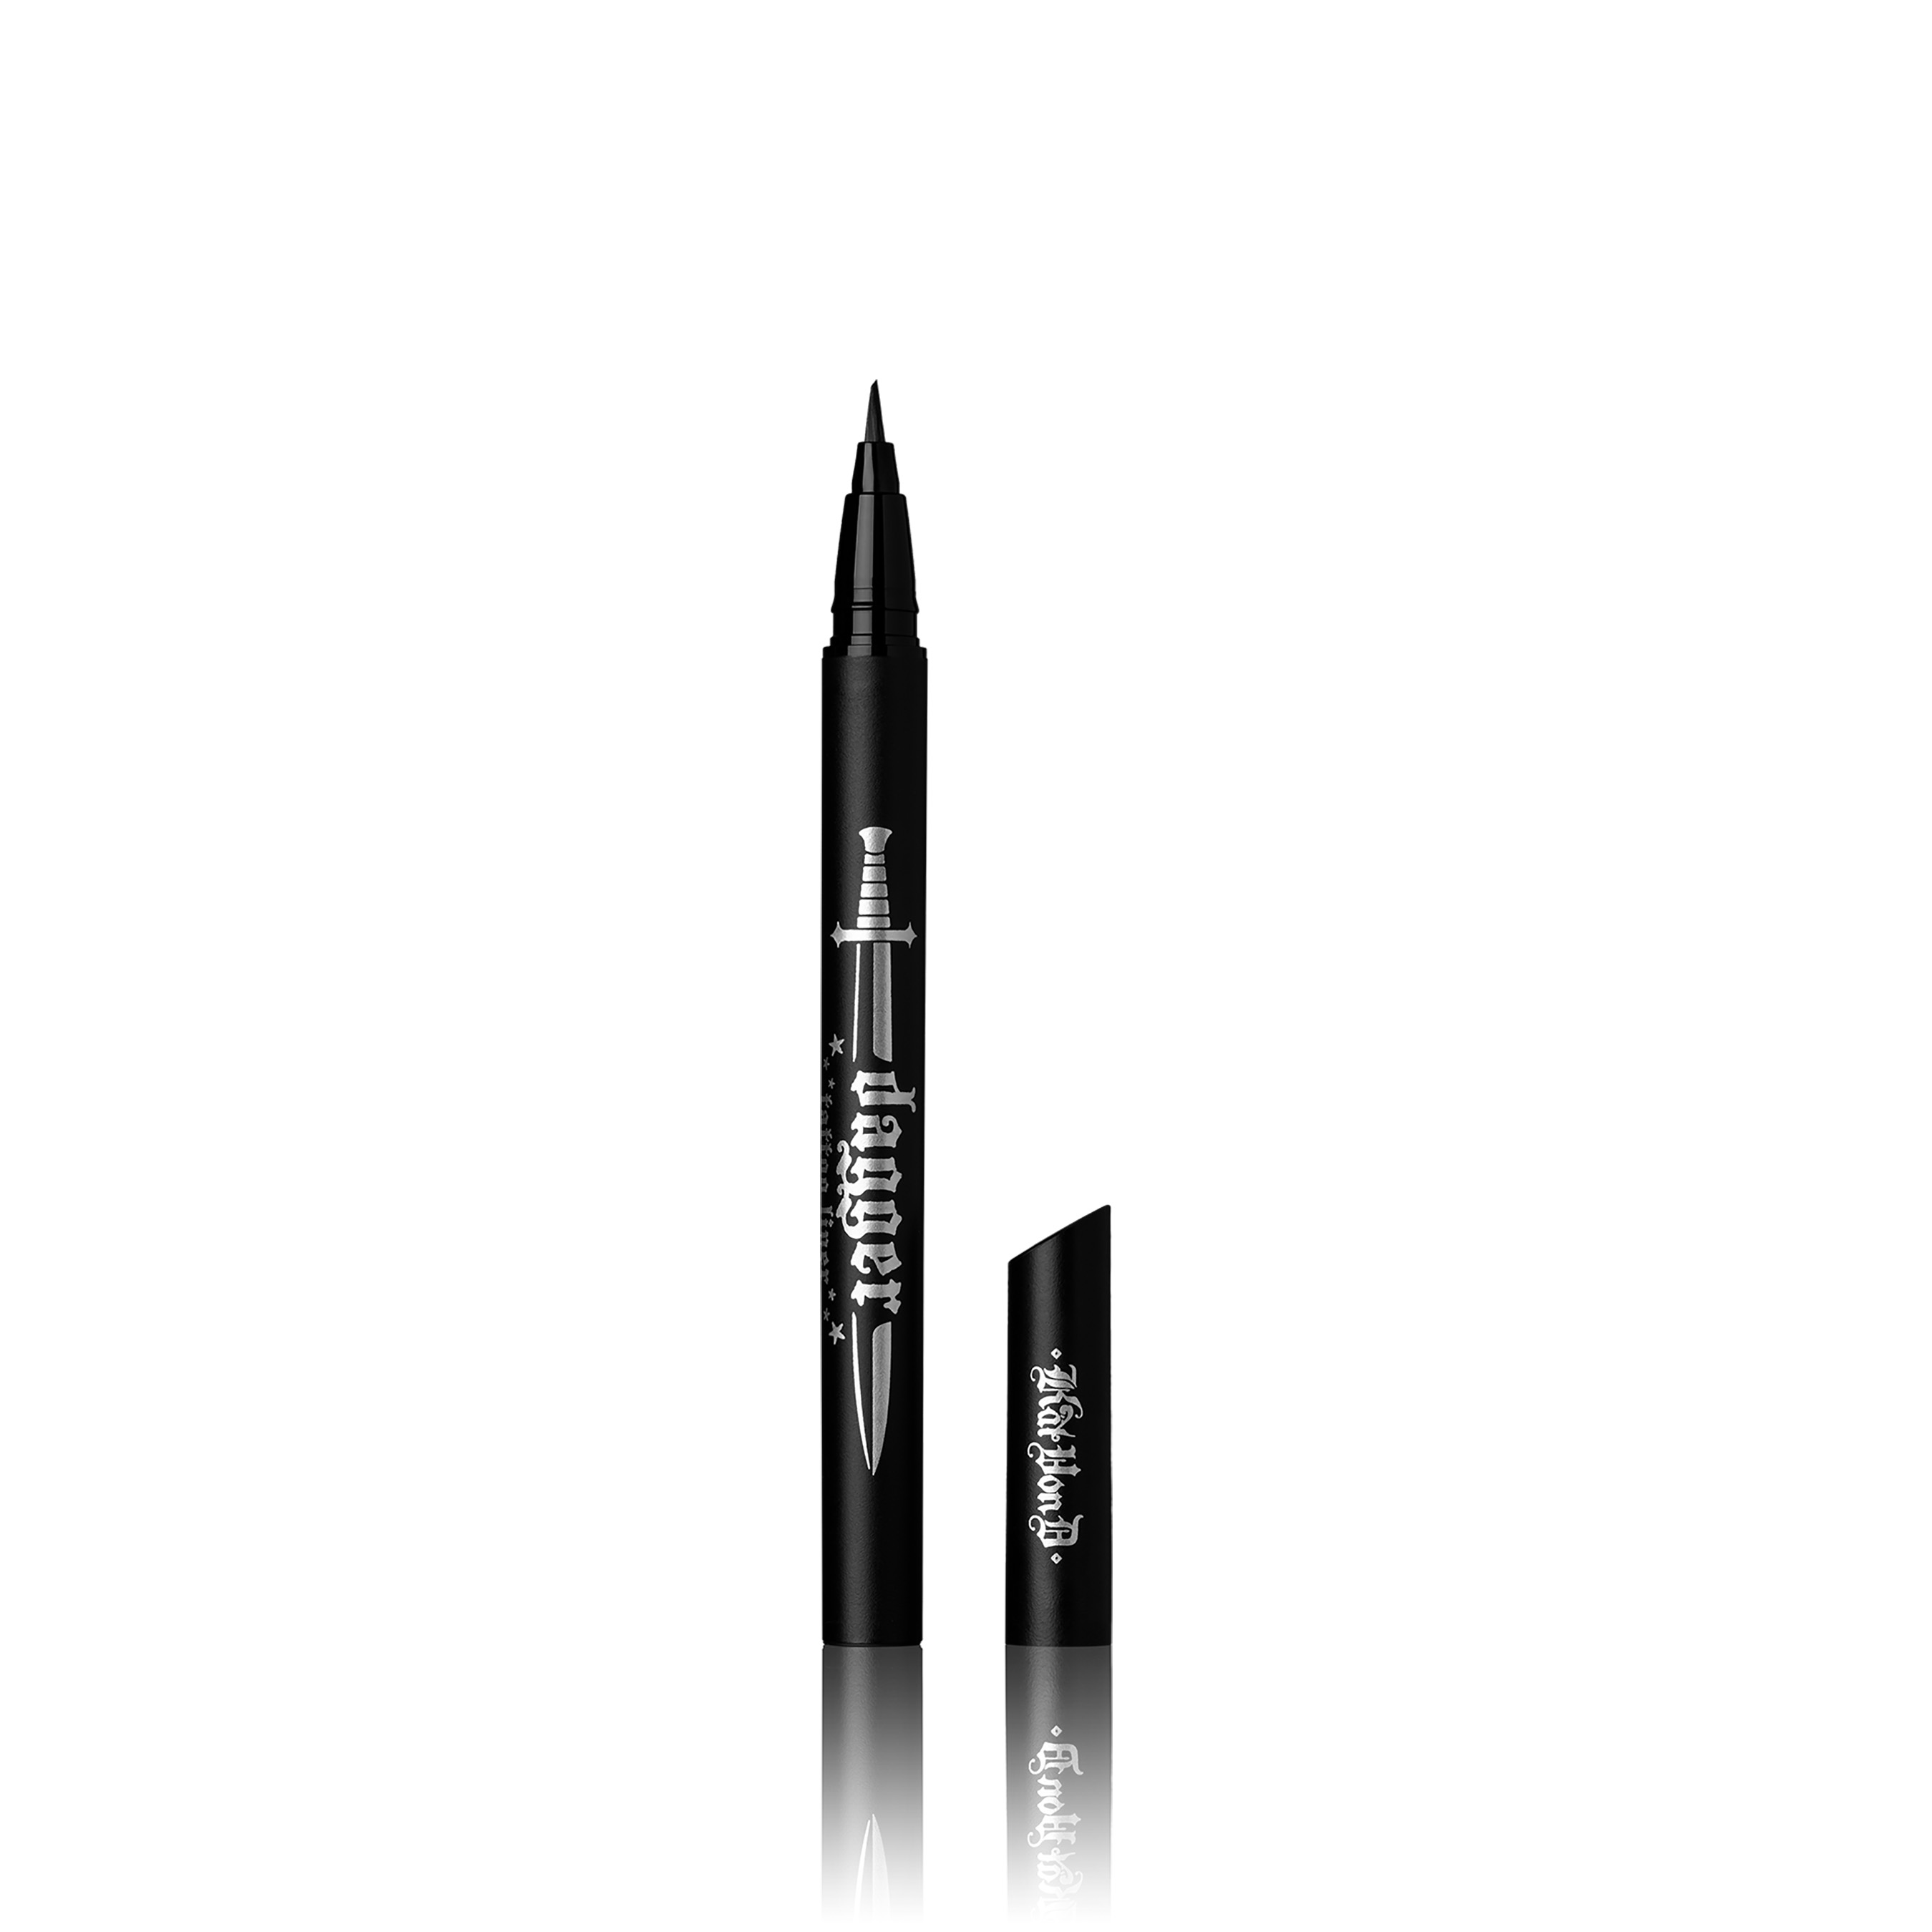 Kat Von D Beauty Dagger Tattoo Liner; Launching 8/20